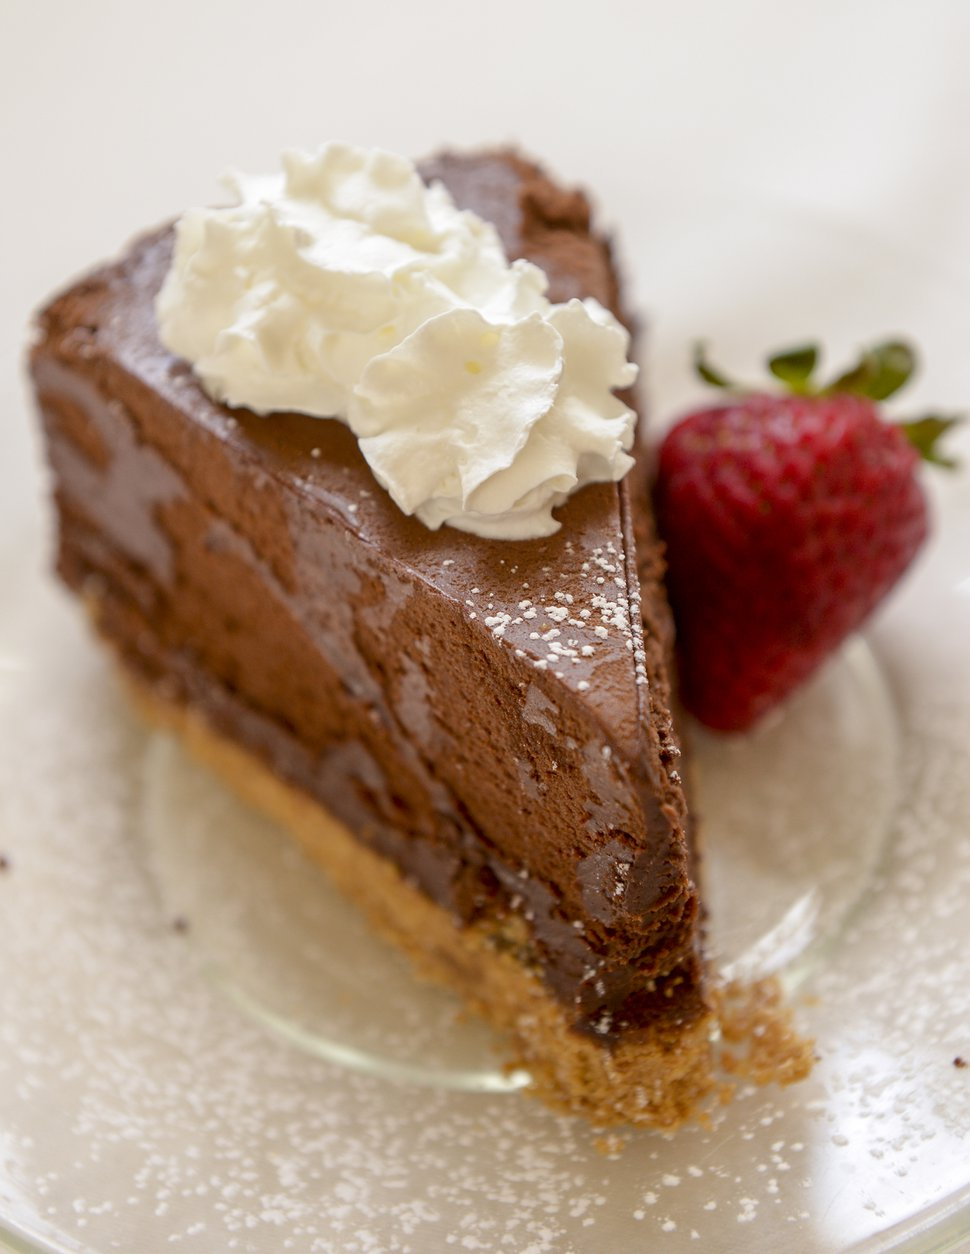 (Leah Hogsten | The Salt Lake Tribune) Chocolate silk pie at Auntie Rae's Dessert Island in Holladay.